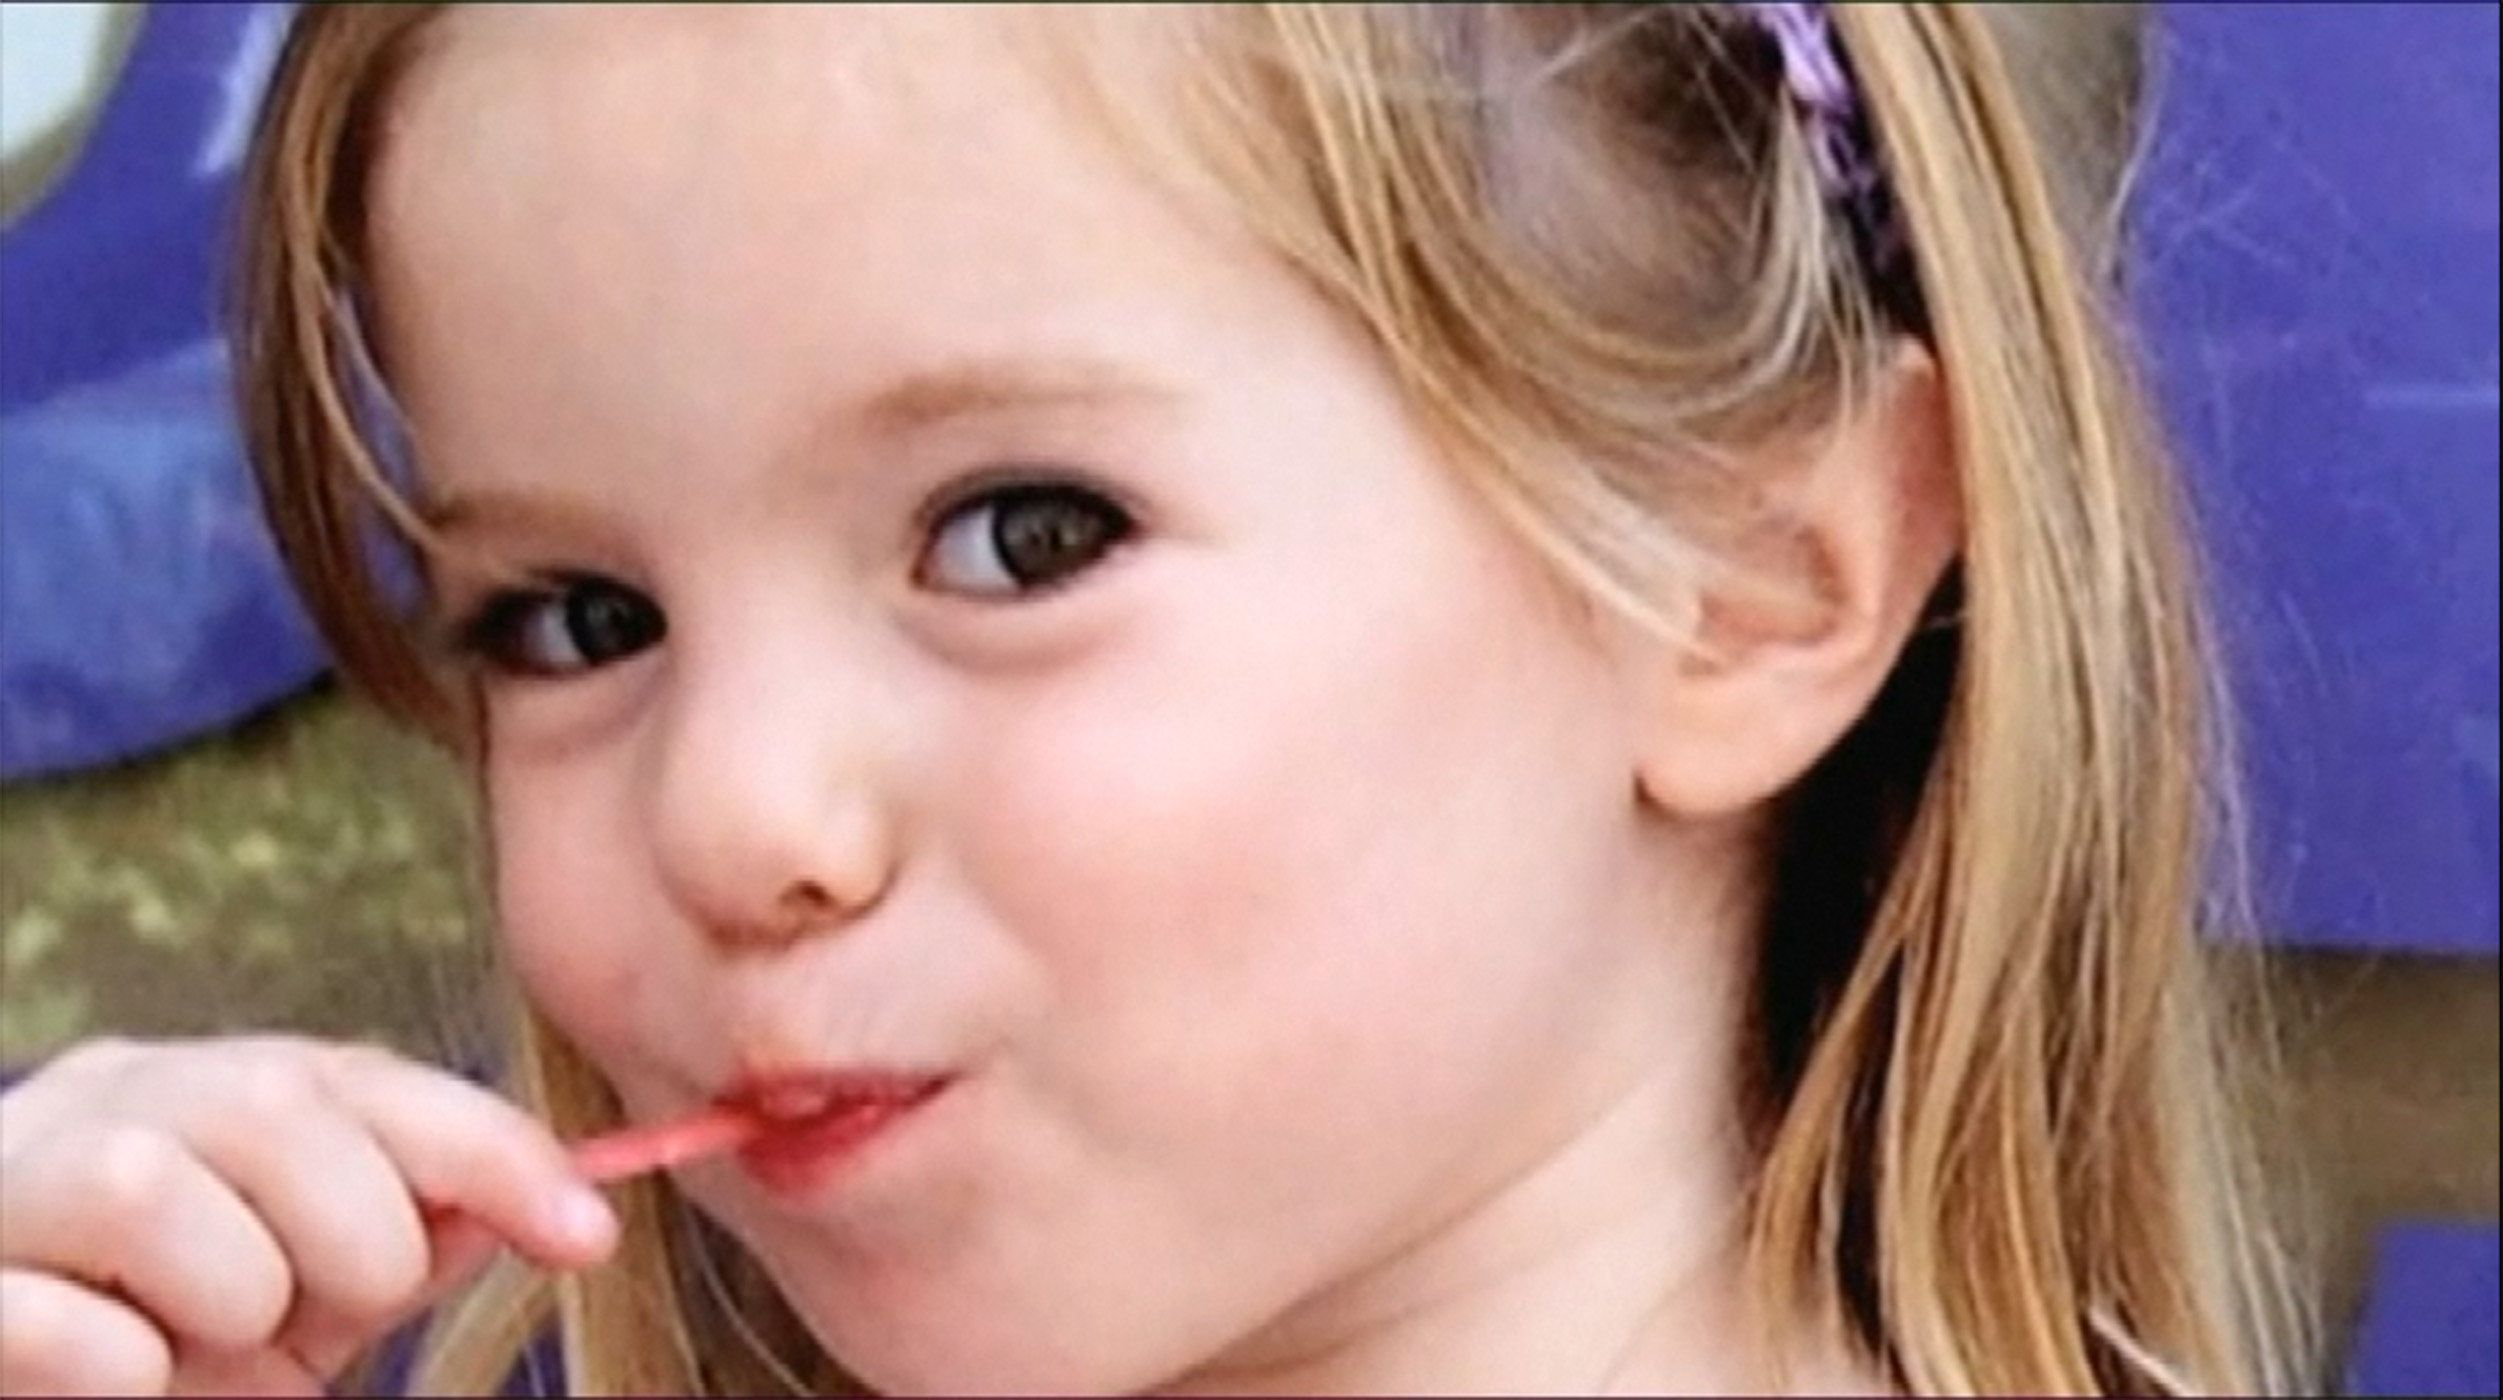 Madeleine McCann: New Netflix Documentary To Explore Toddler's Disappearance